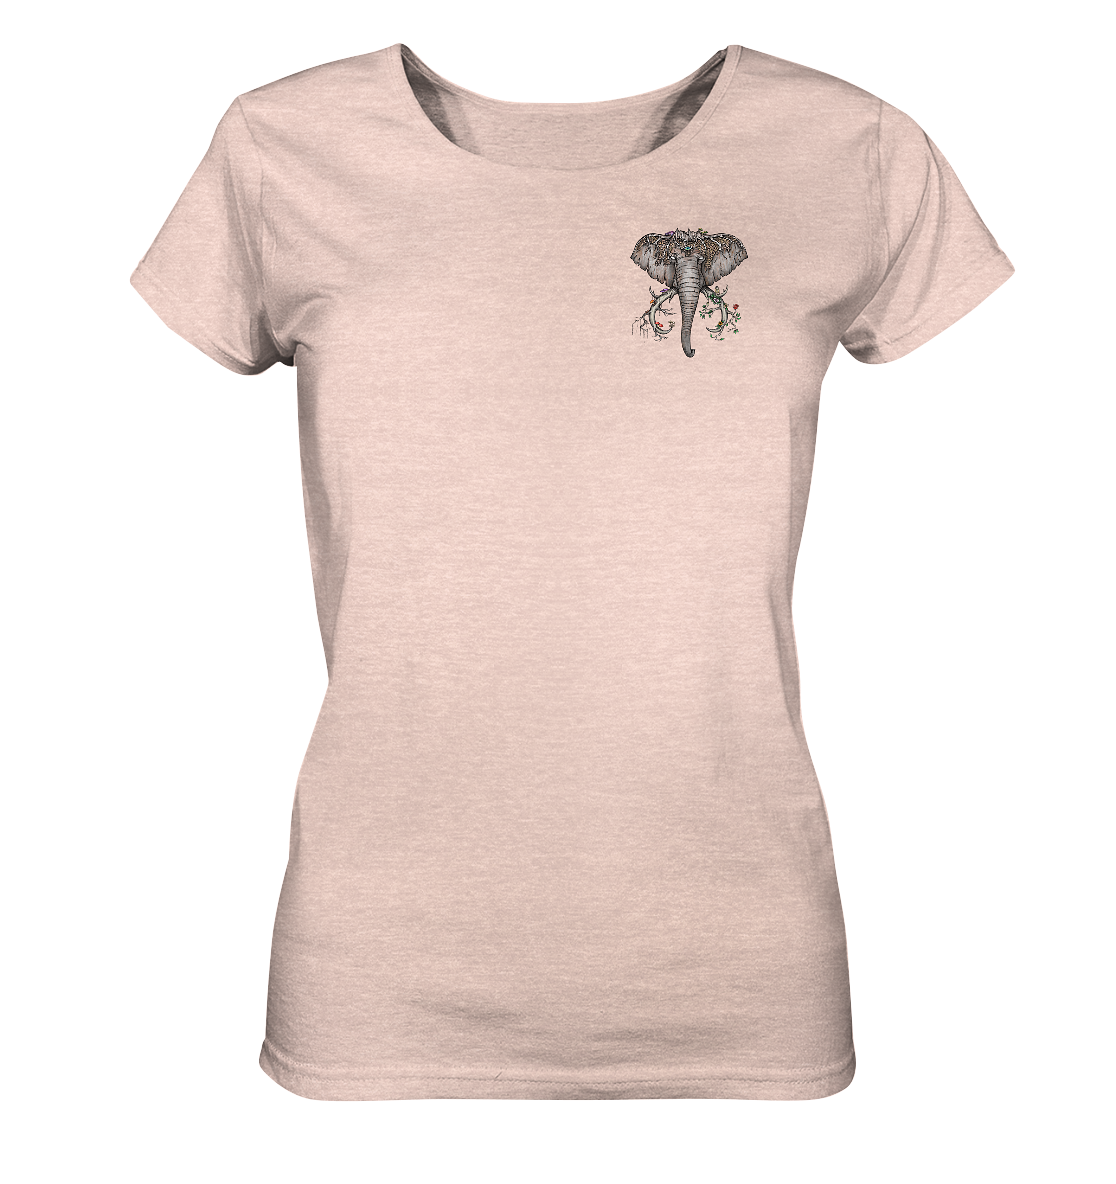 front-ladies-organic-shirt-meliert-ffded6-1116x-3.png